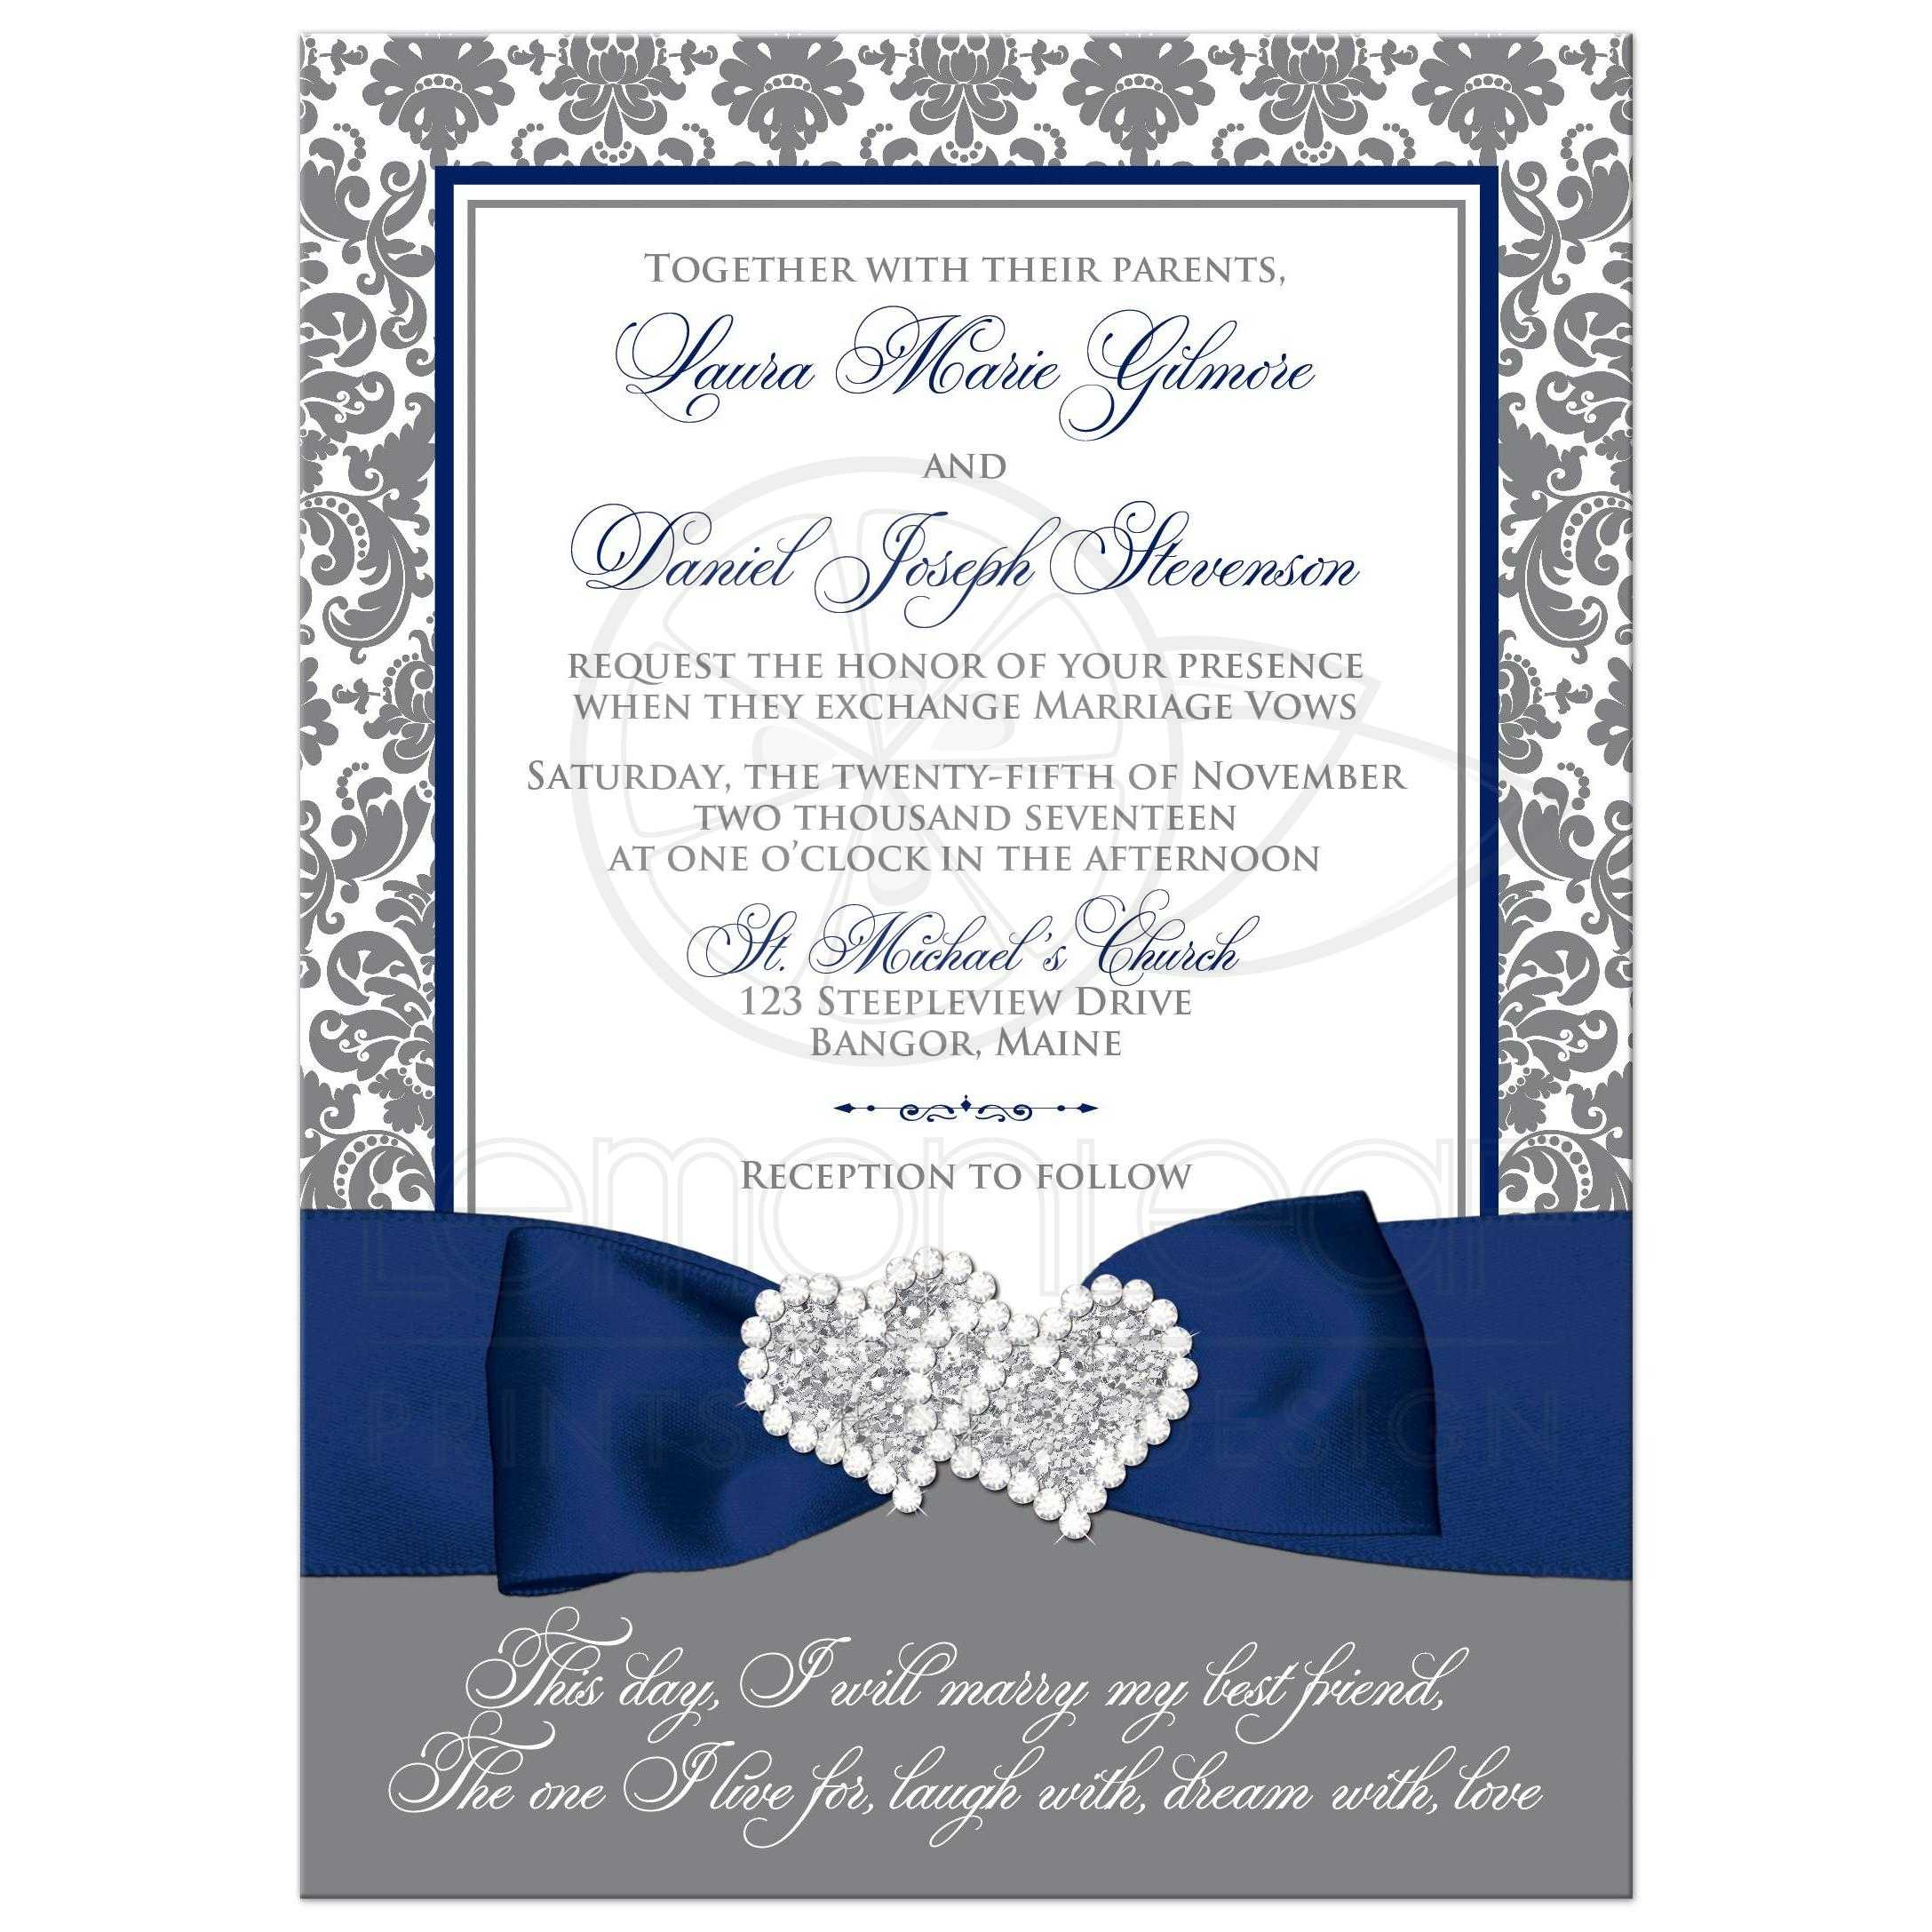 navy blue grey and white damask pattern wedding invitation with ribbon bow - Damask Wedding Invitations